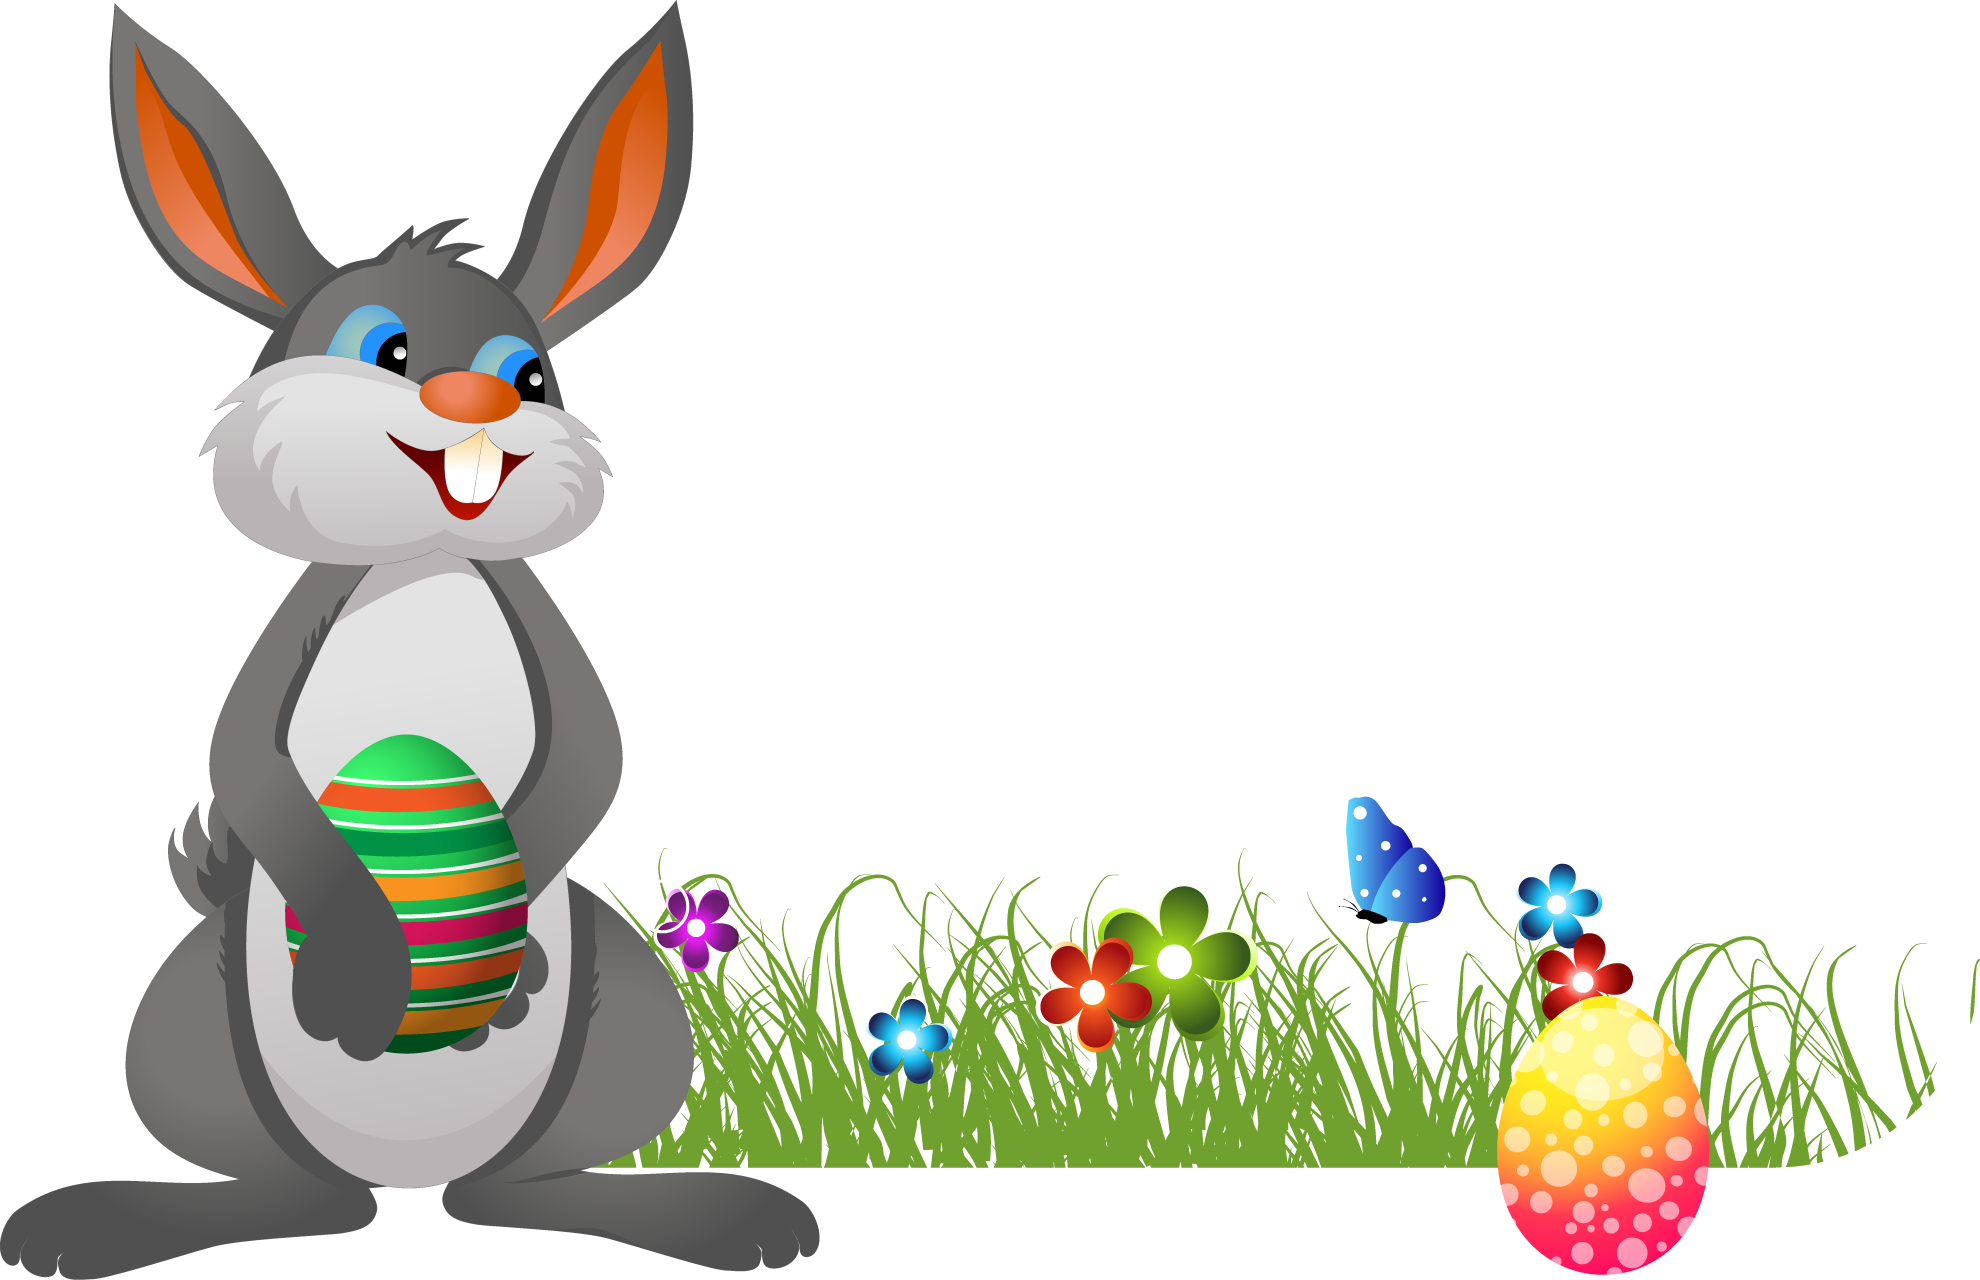 PNG File Name: Easter Bunny P